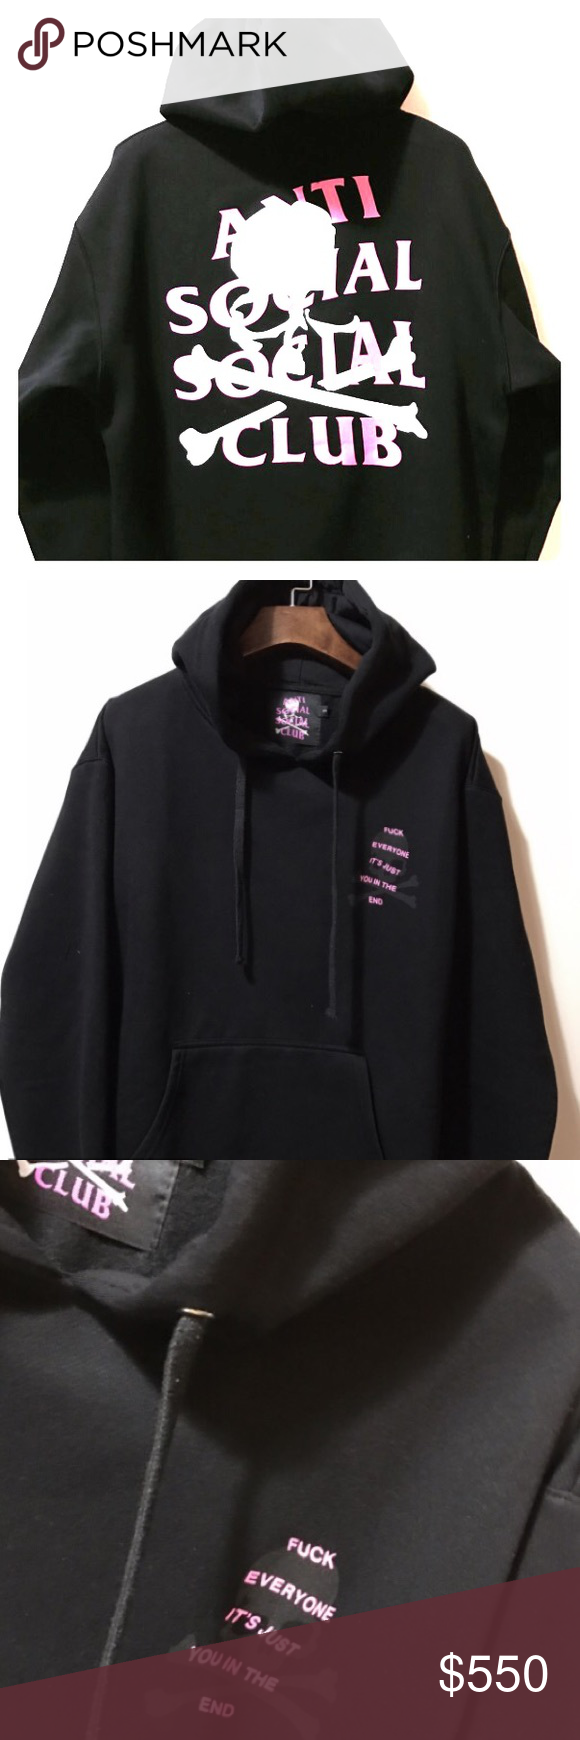 5b1cfc0a462f Anti Social Social Club x Mastermind Japan Hoodie I Bought this IN PERSON  at the LA Pop Up Shop on 12 8 on La Brea Ave. will provide copy of receipt  with ...